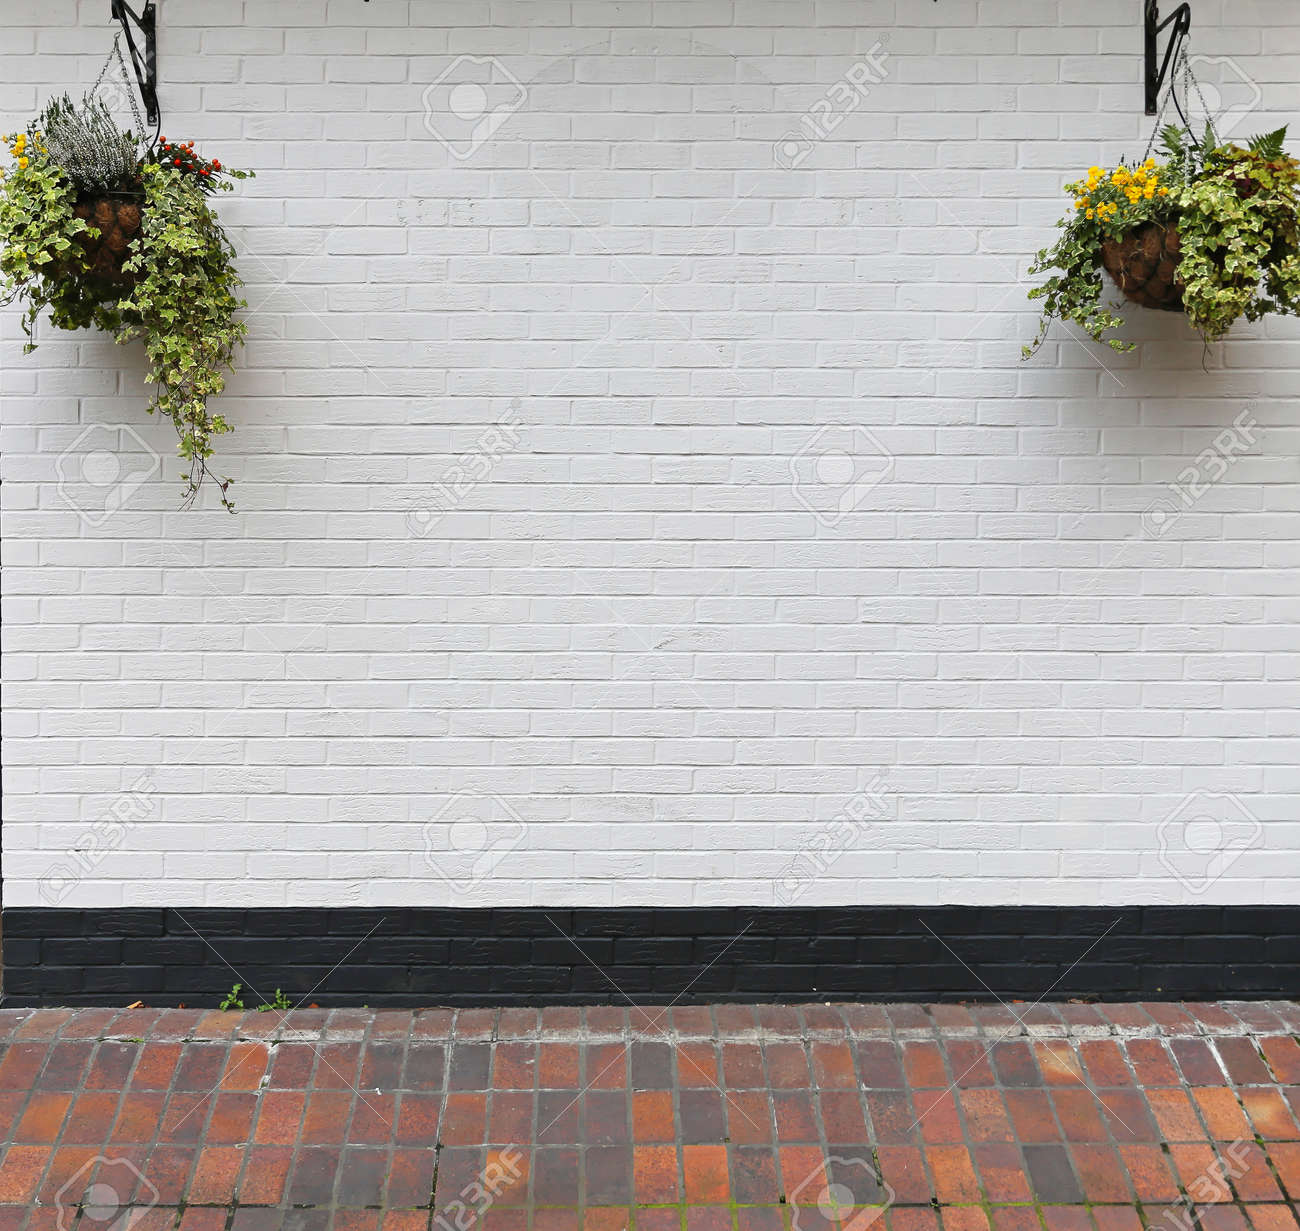 White Wall With Hanging Flower Pots Stock Photo Picture And Royalty Free Image Image 24088489